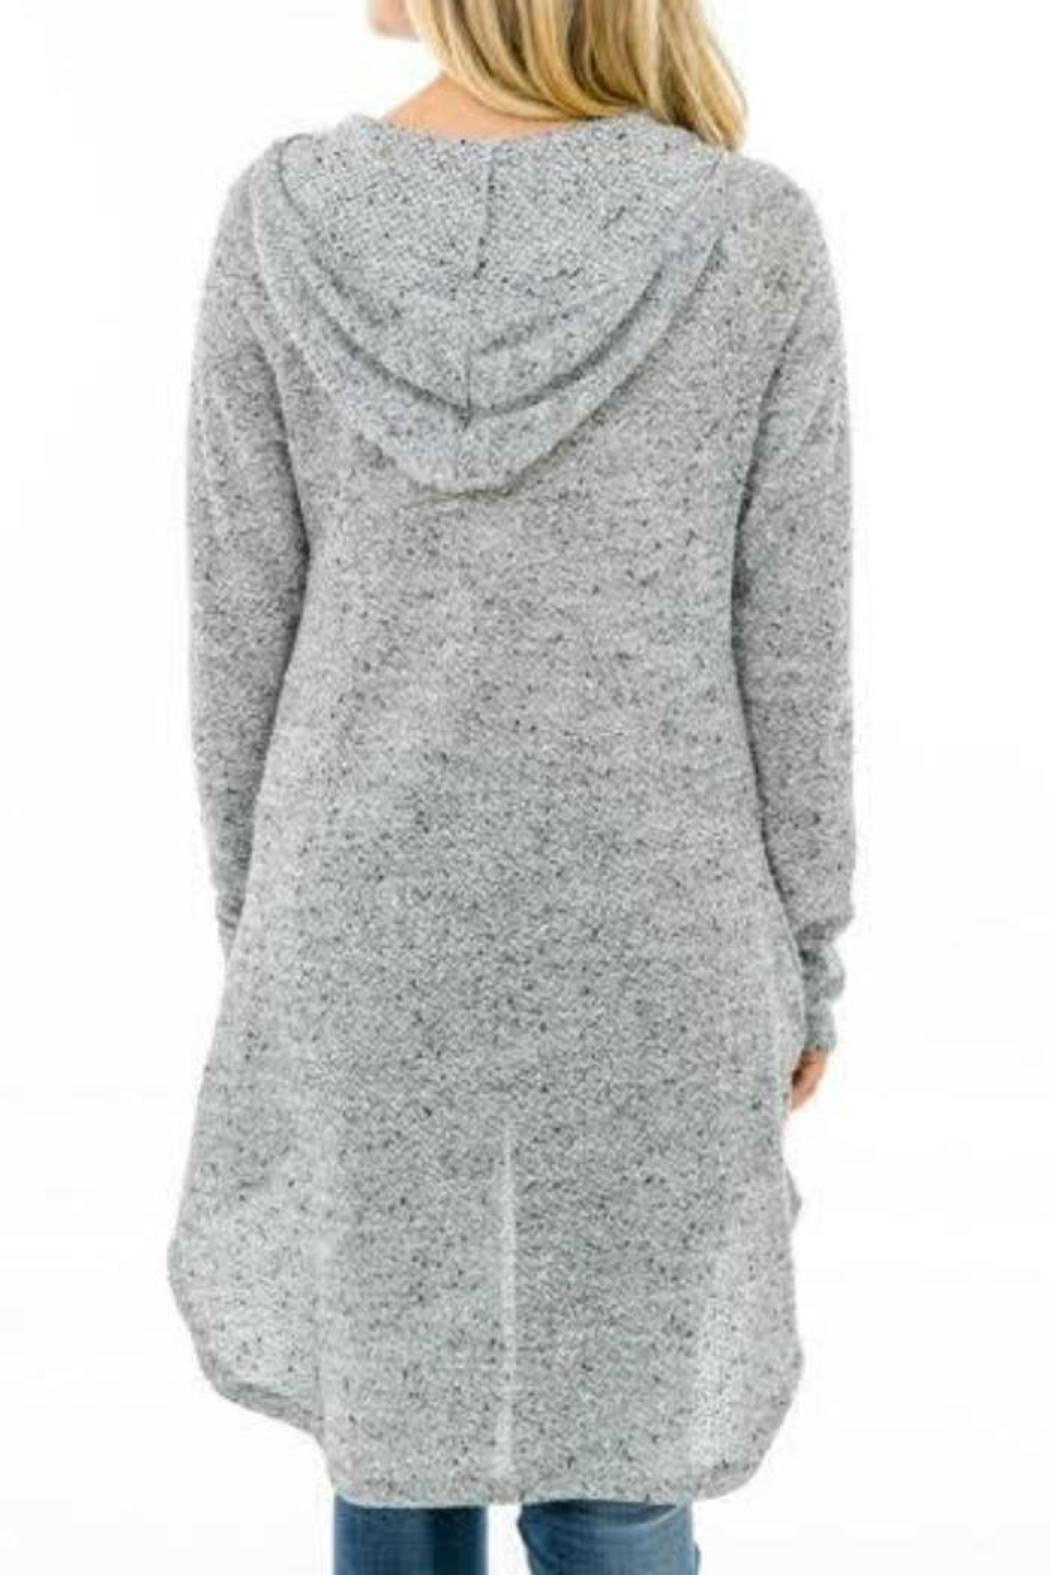 12113f93bec1 Karlie Clothes Hooded Wrap Sweater from Georgia by Mint Boutique ...